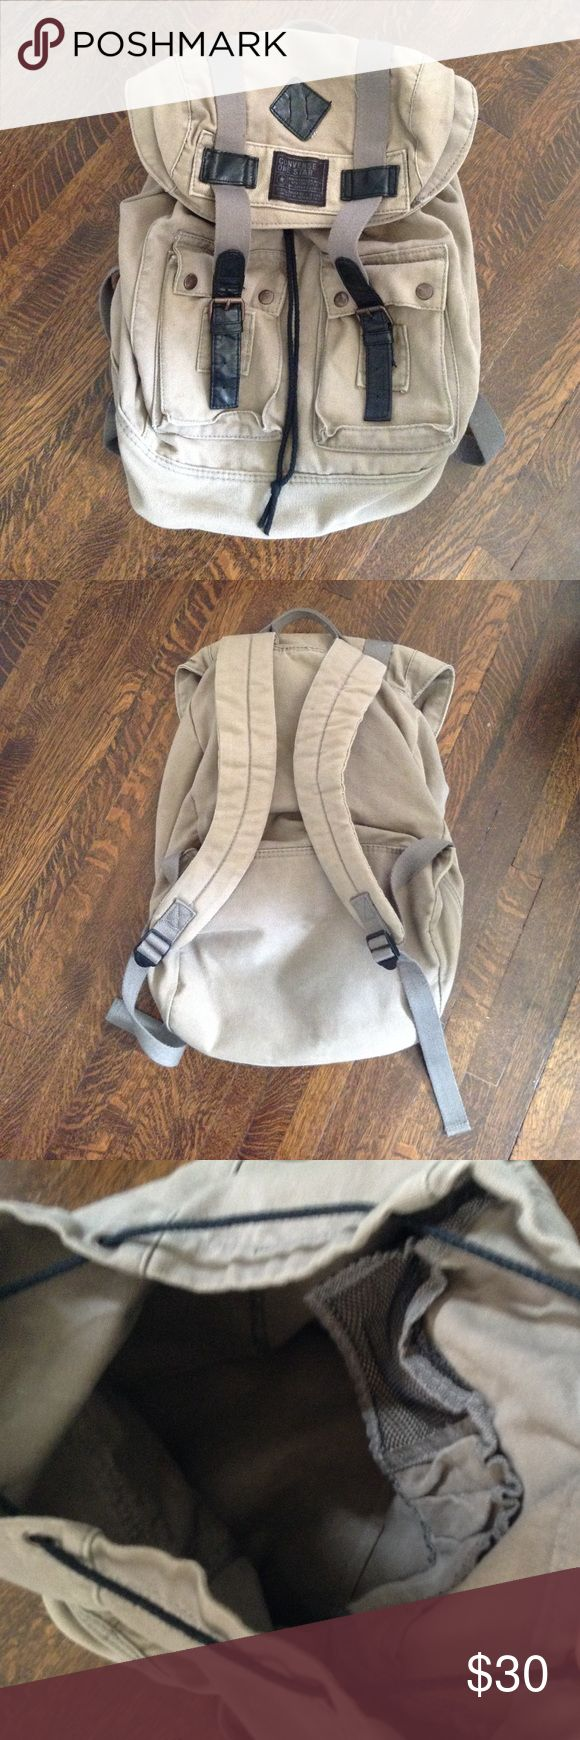 Excellent condition Converse drawstring backpack Used only a couple of times. Unique look with one large compartment and two small front pockets. Pen holders and mesh pouch inside. Converse Bags Backpacks